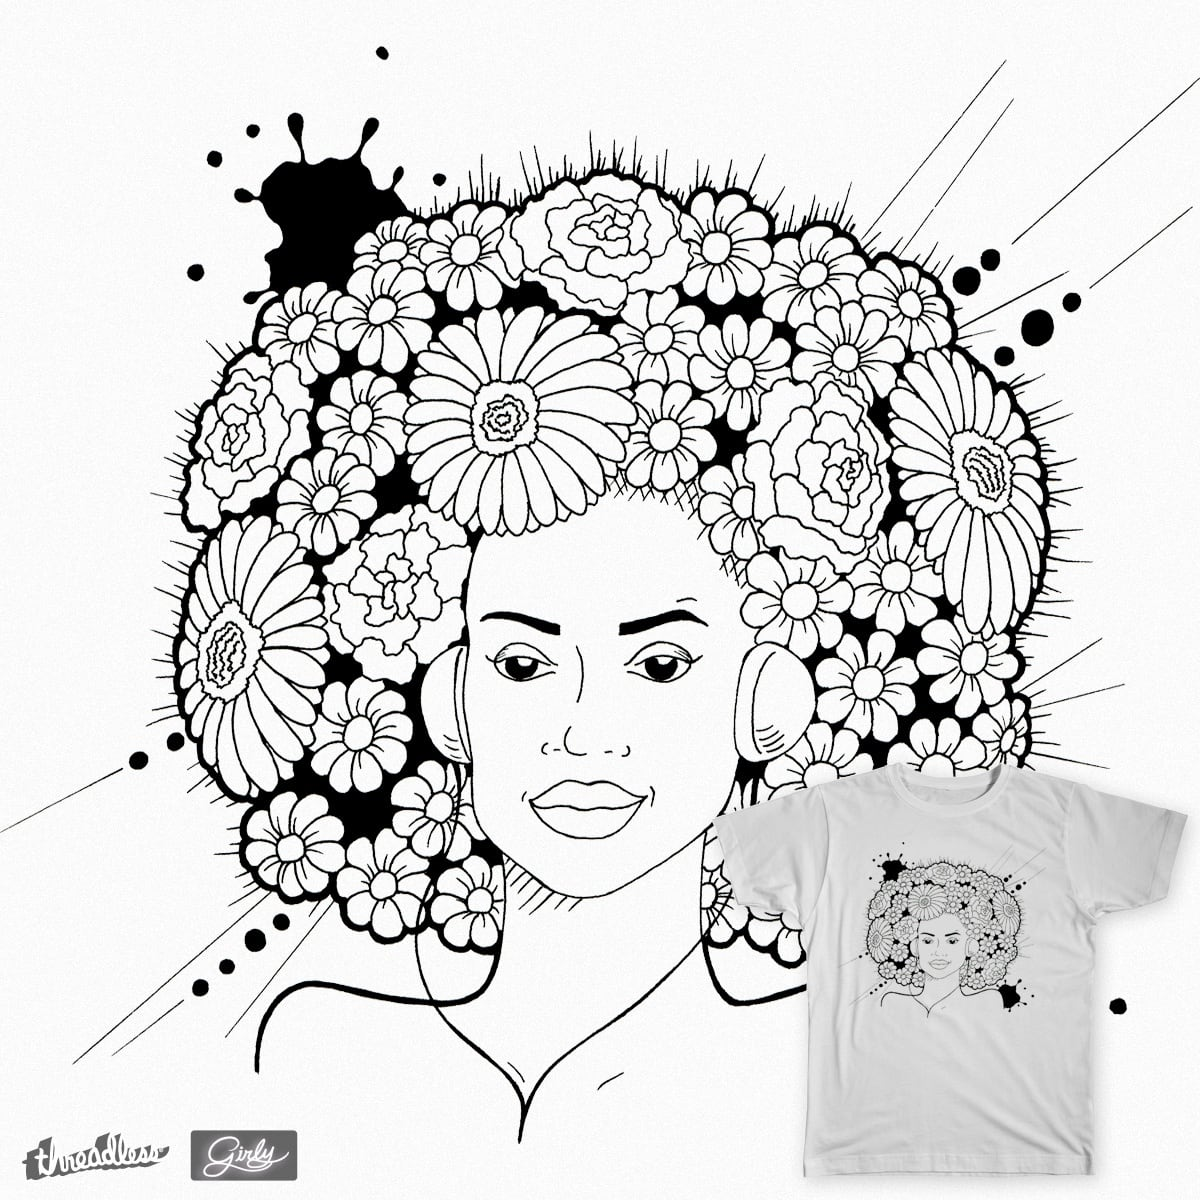 Girl and flowers by sunny.margaret on Threadless